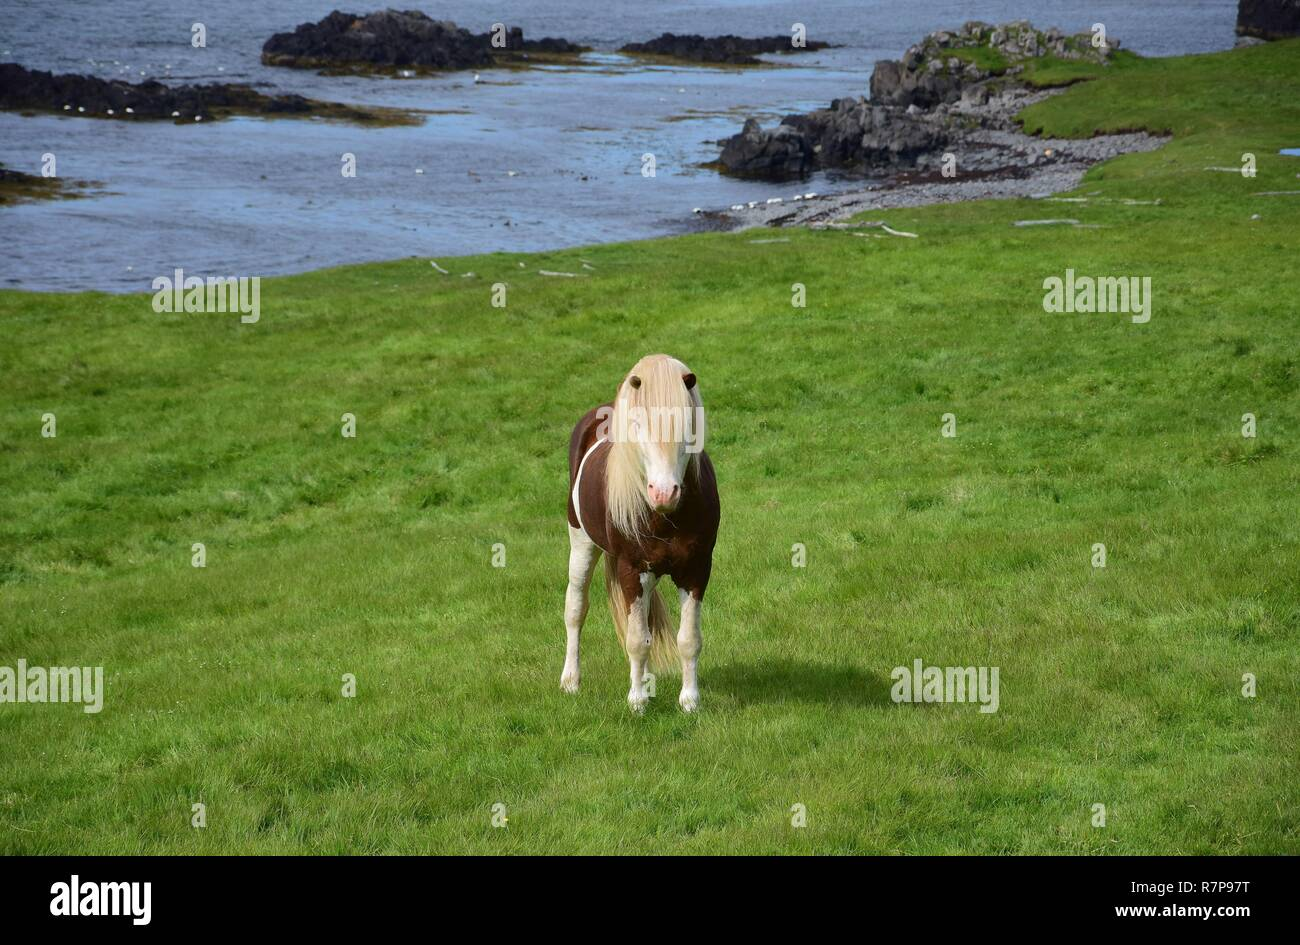 Icelandic stallion in the color splashed white, with white legs and a white head with blue eyes. Icelandic landscape in the background. - Stock Image